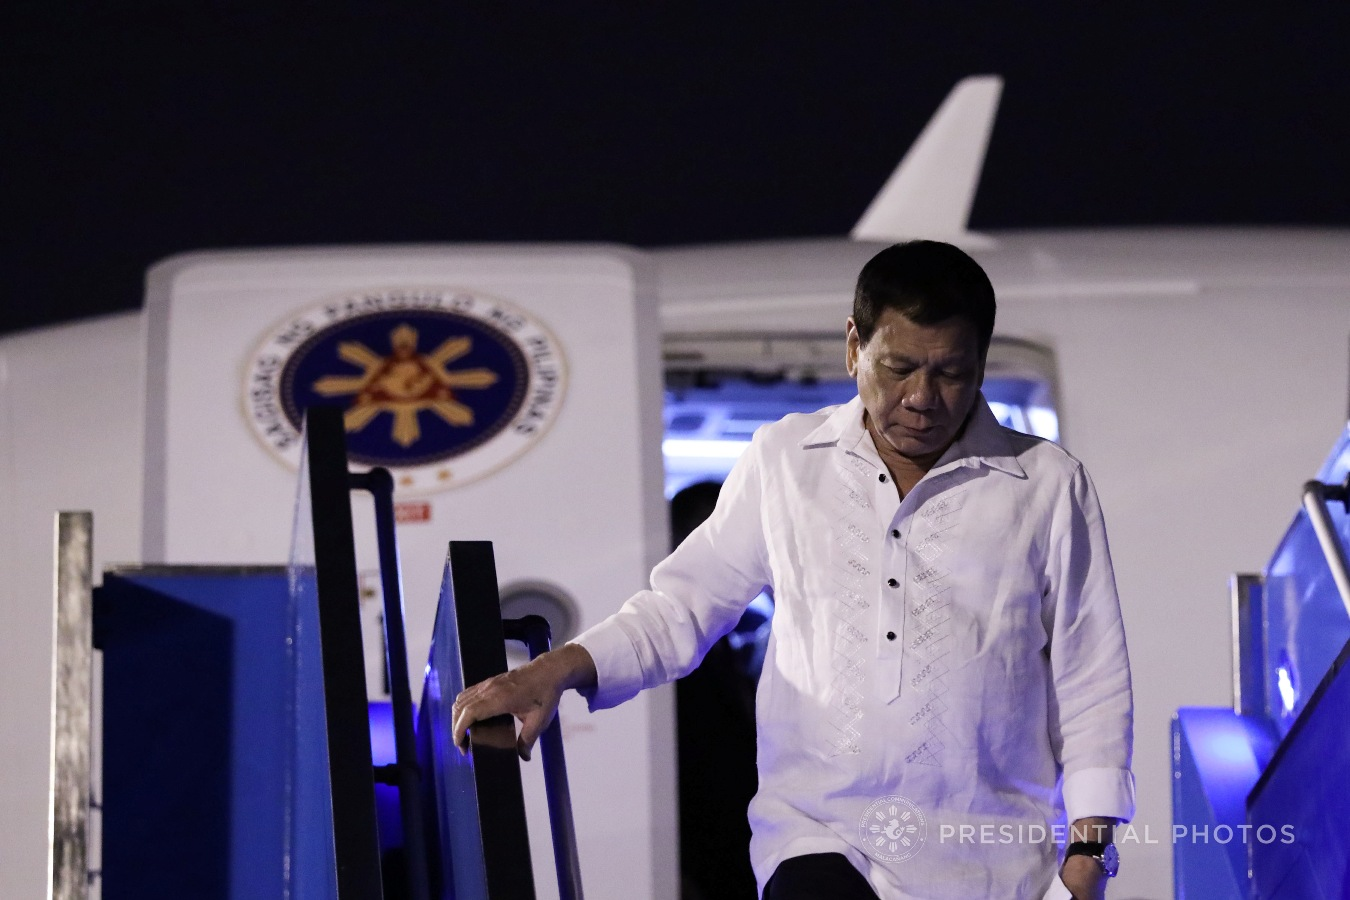 Philippines President Rodrigo Duterte: I stabbed someone to death